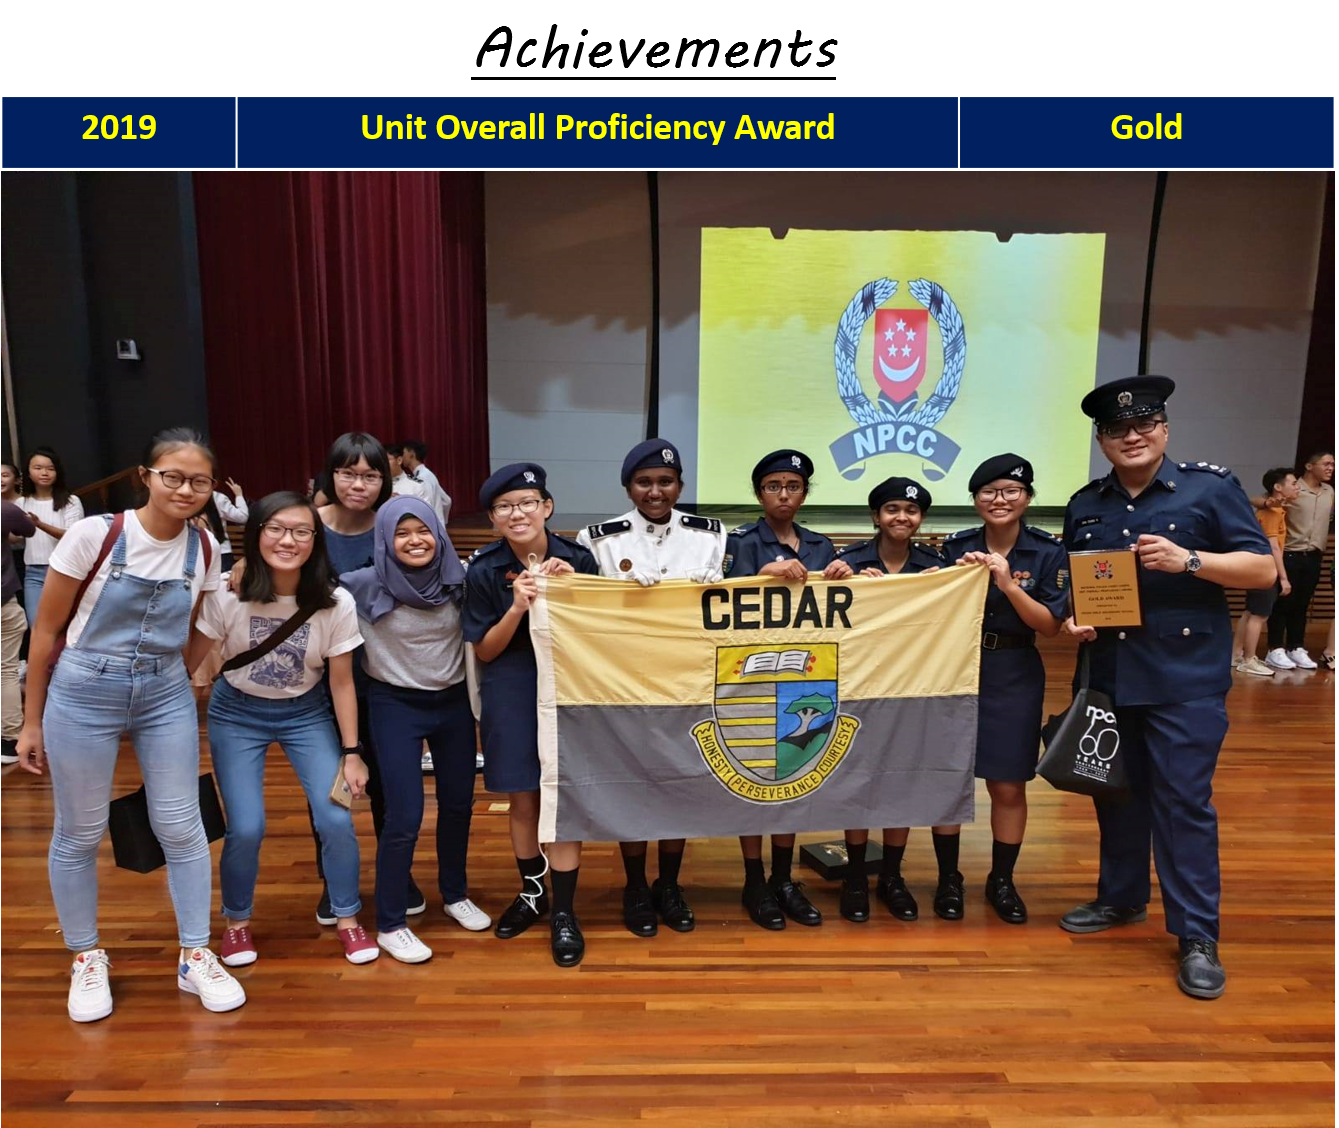 npcc achievements.png